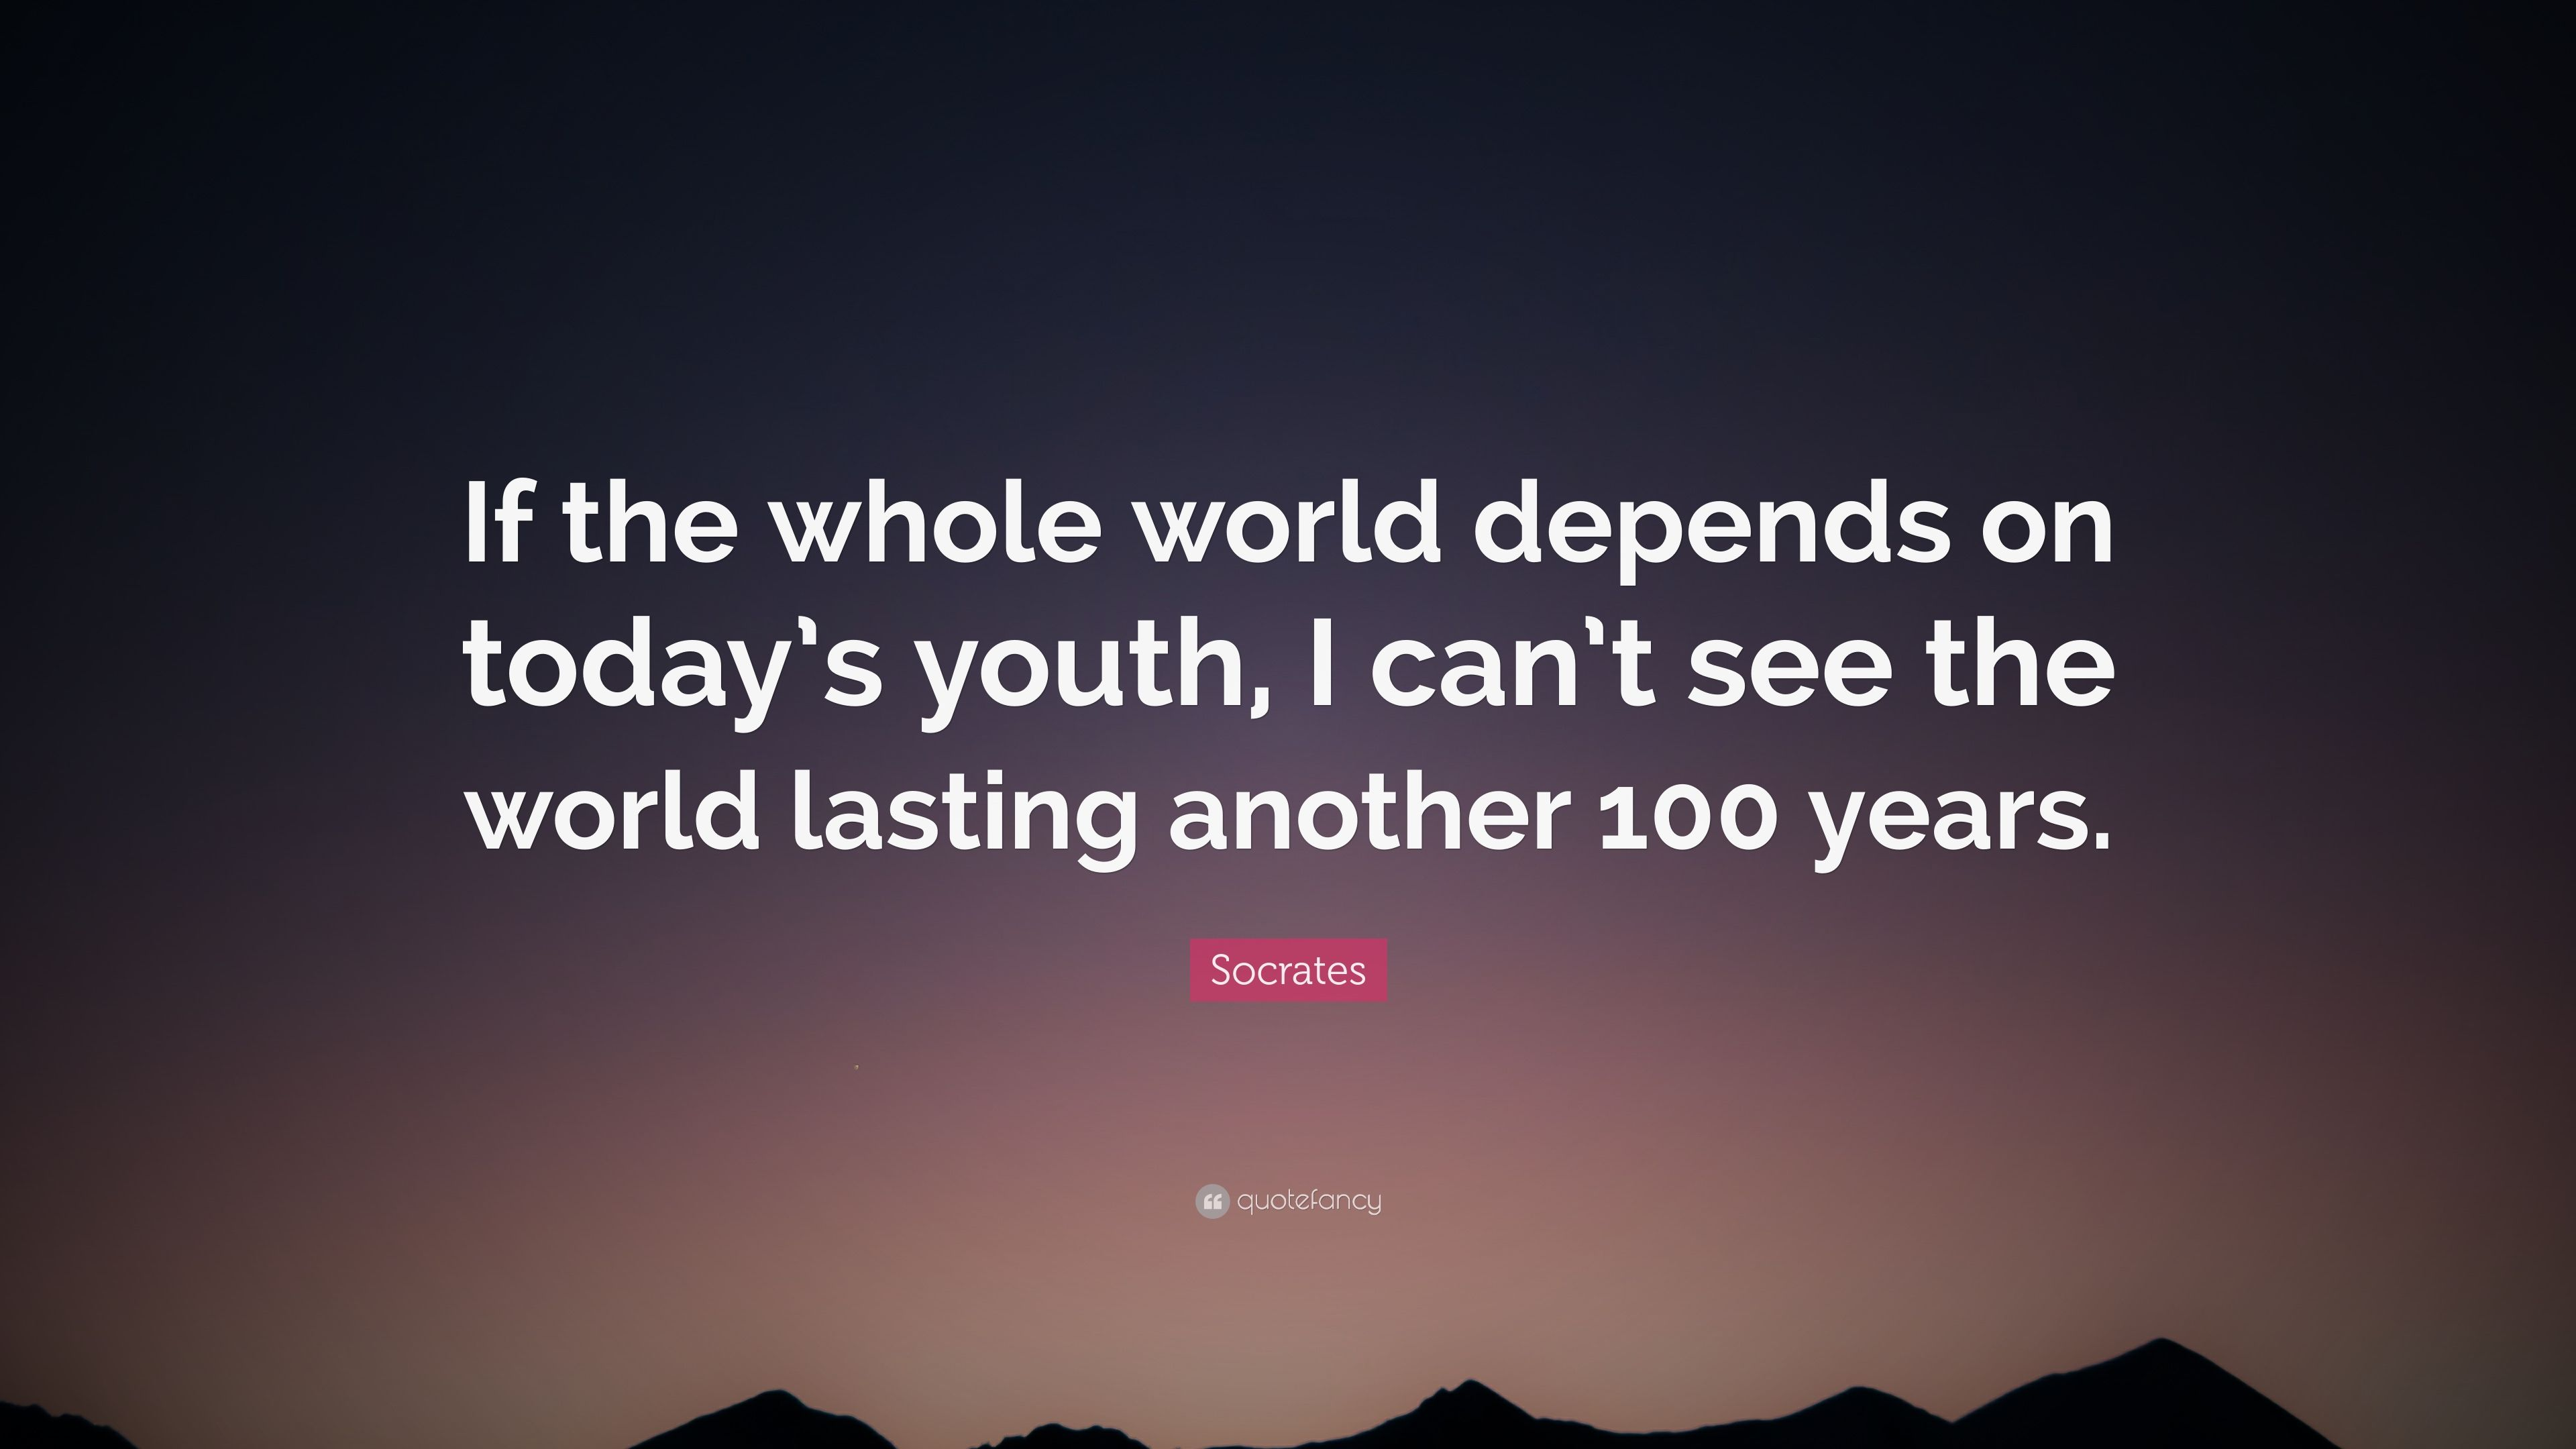 the youth of today socrates